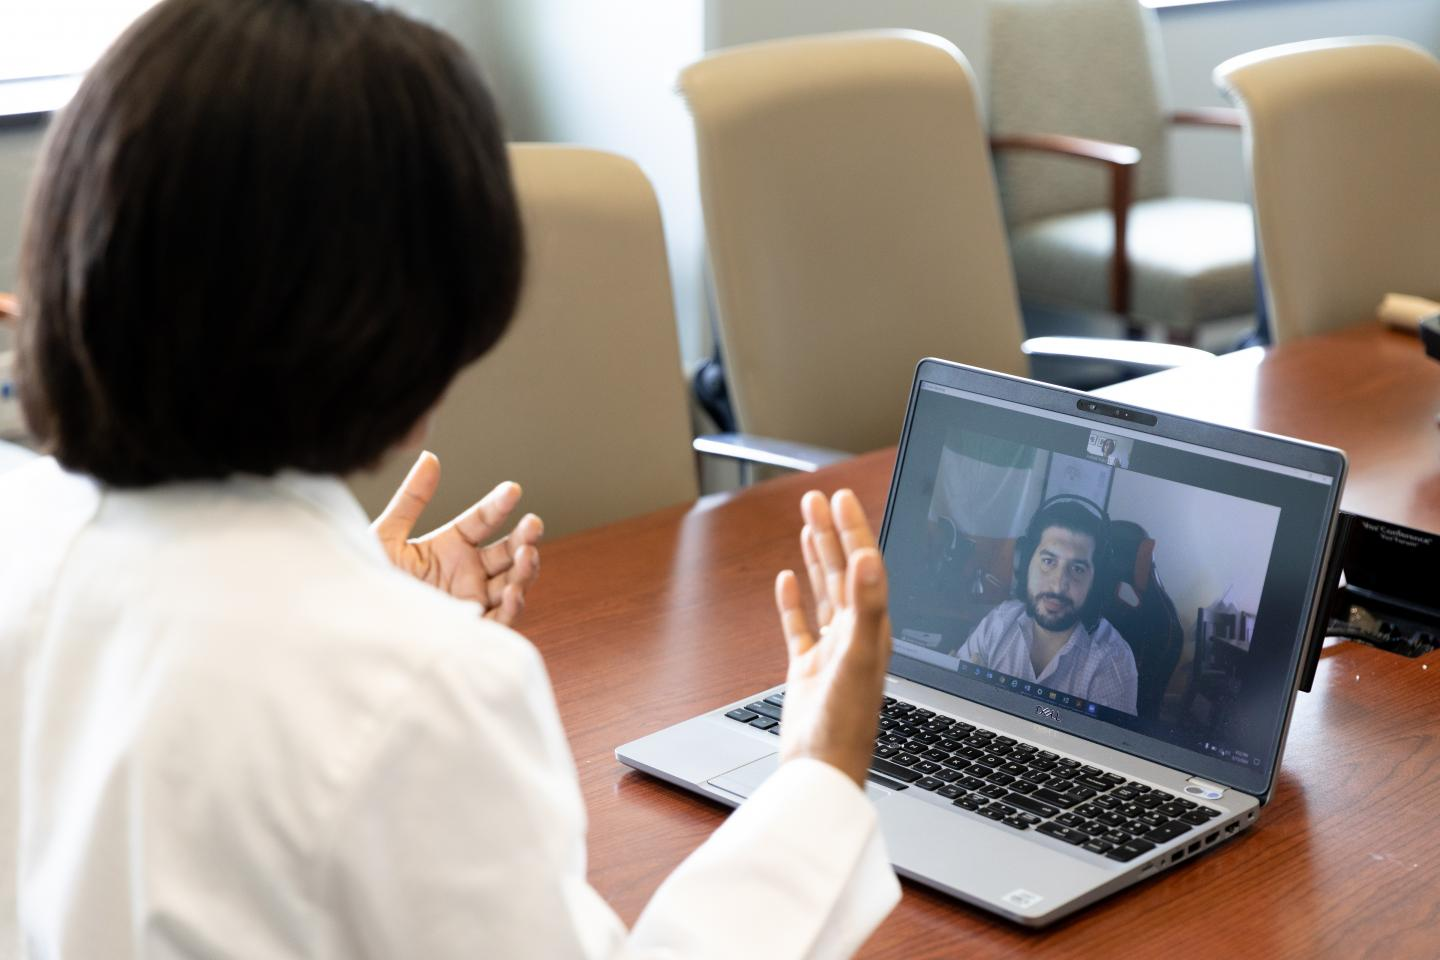 Access to peer support combined with telehealth being studied for its effectiveness to combat PTSD